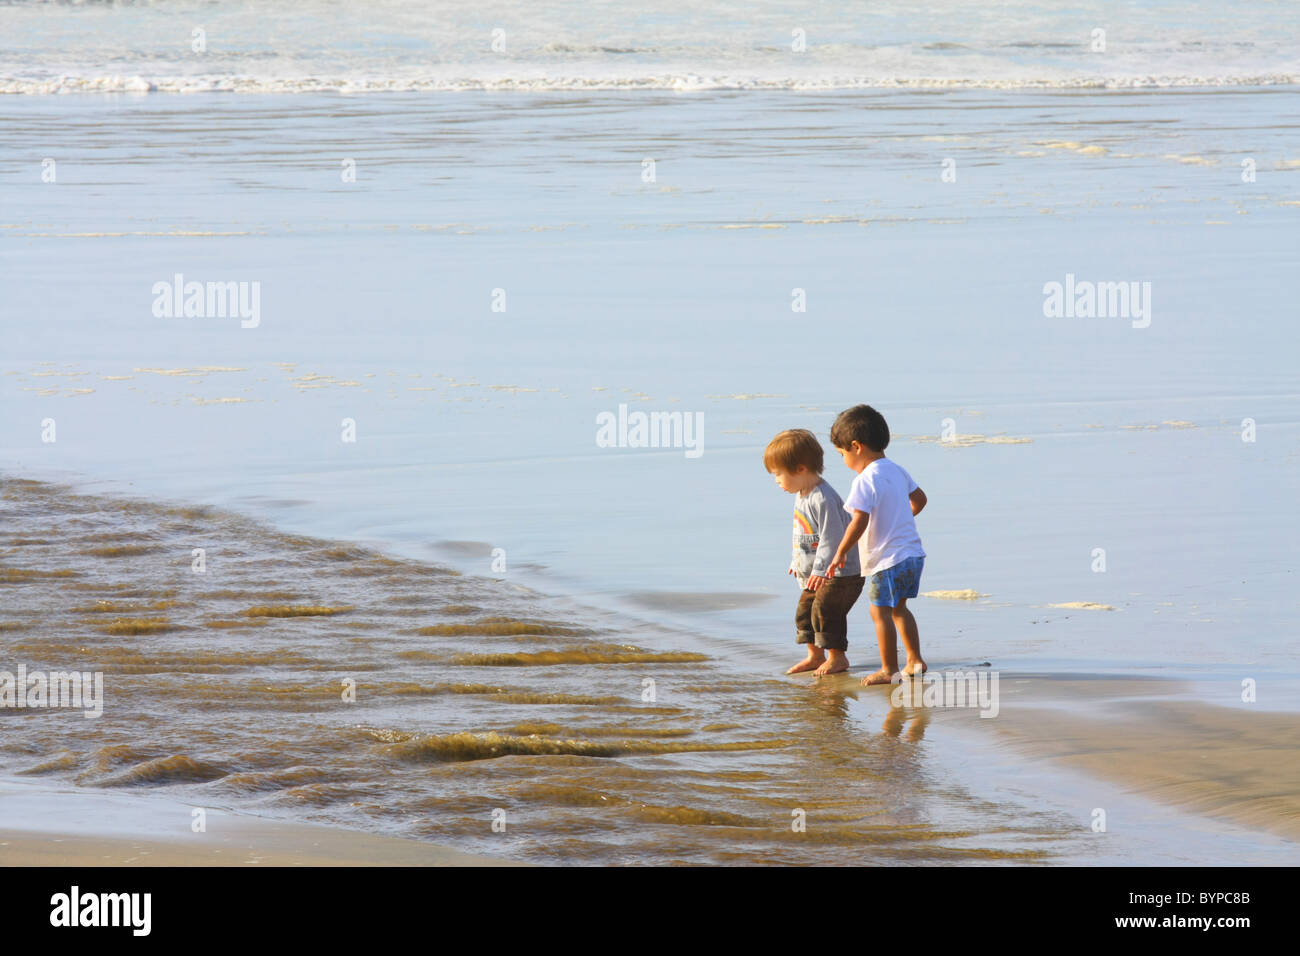 Two small children in T-shirts and shorts playing and walking barefoot in the water on a wet beach. - Stock Image